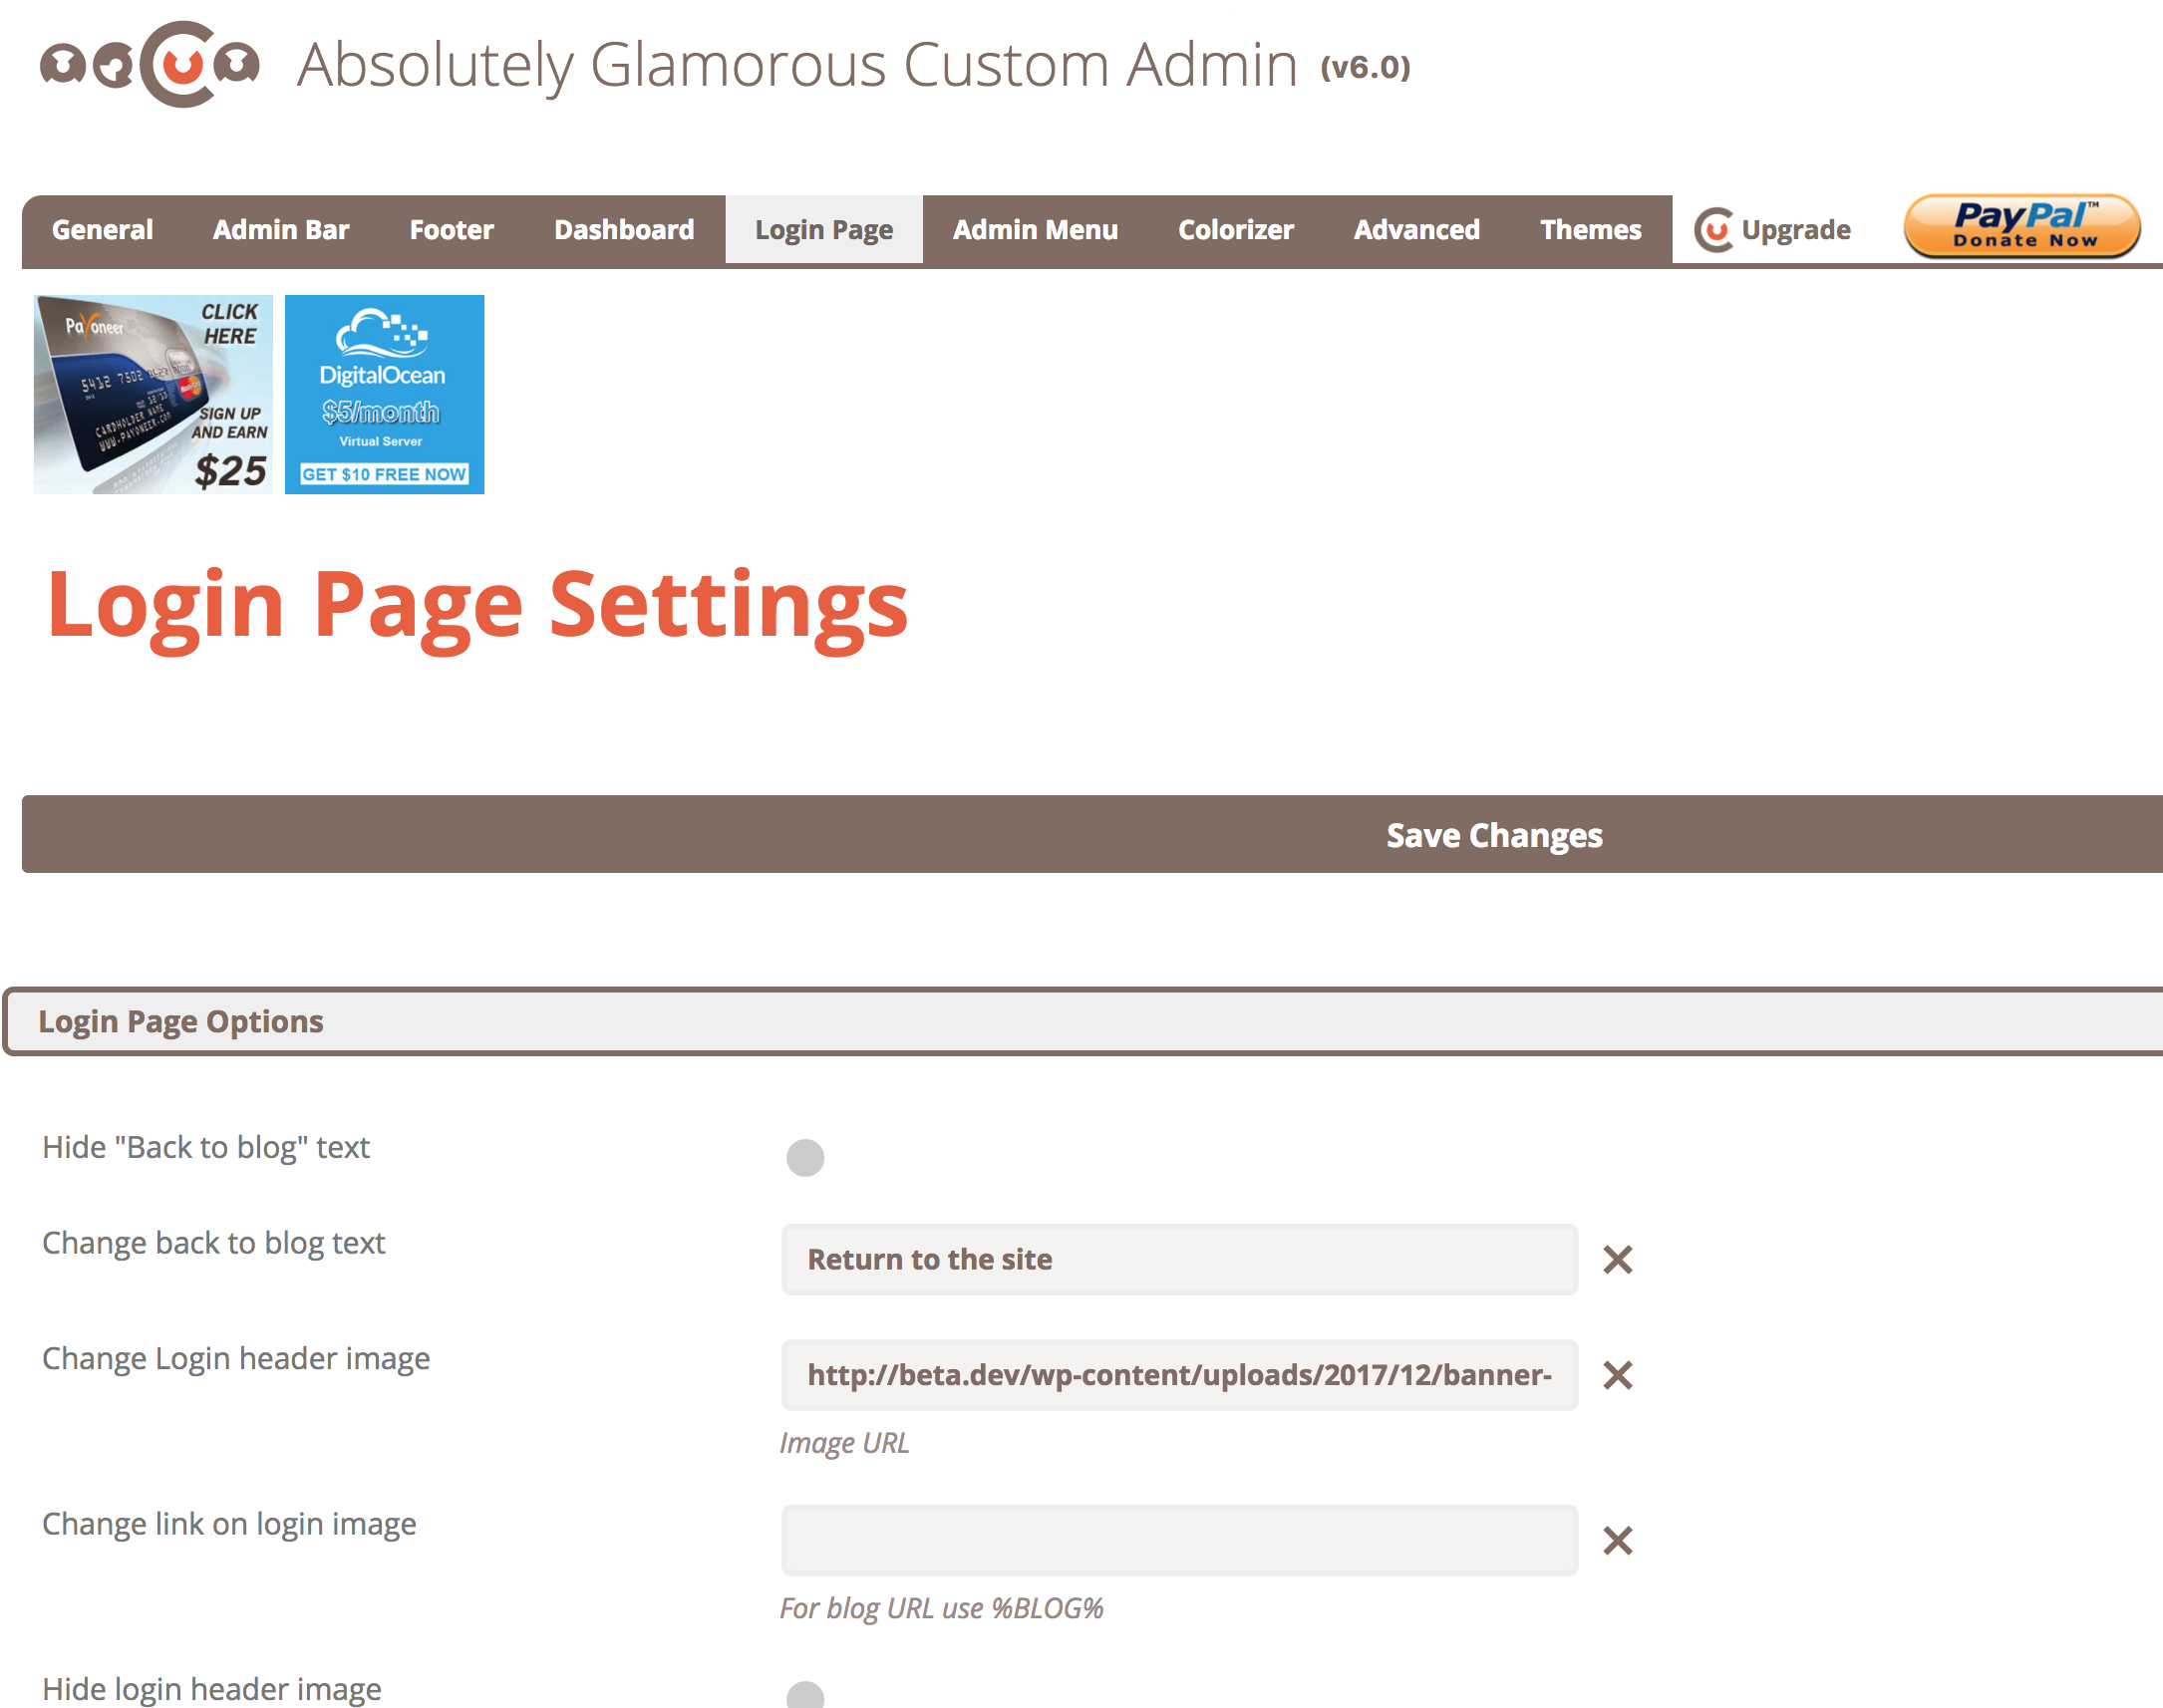 Download Absolutely Glamorous Custom Admin 6.4.1 – Free WordPress Plugin